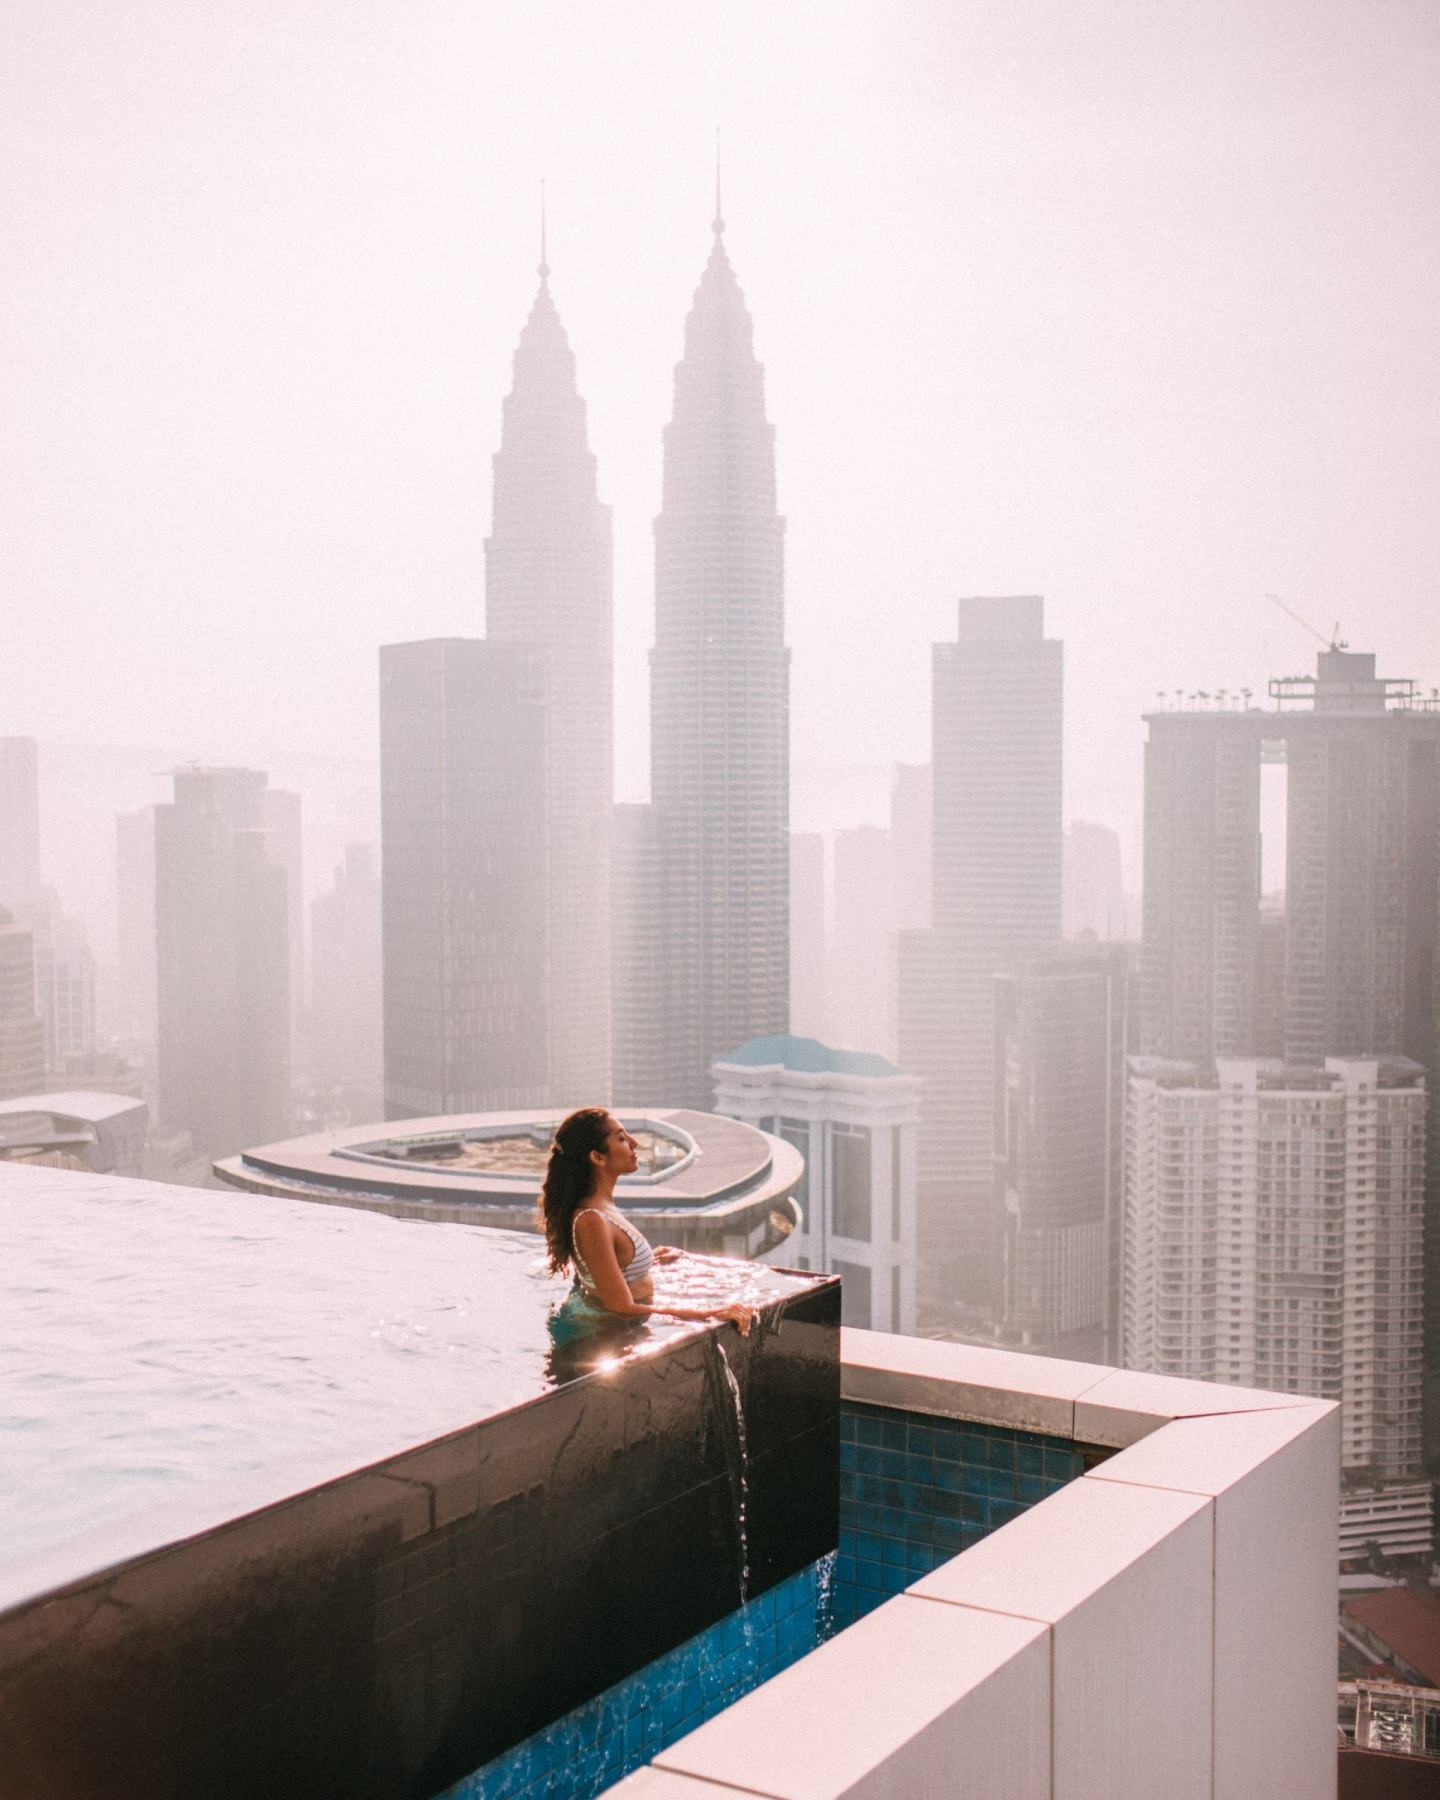 women swimming in a swimming pool watching the petrona towers